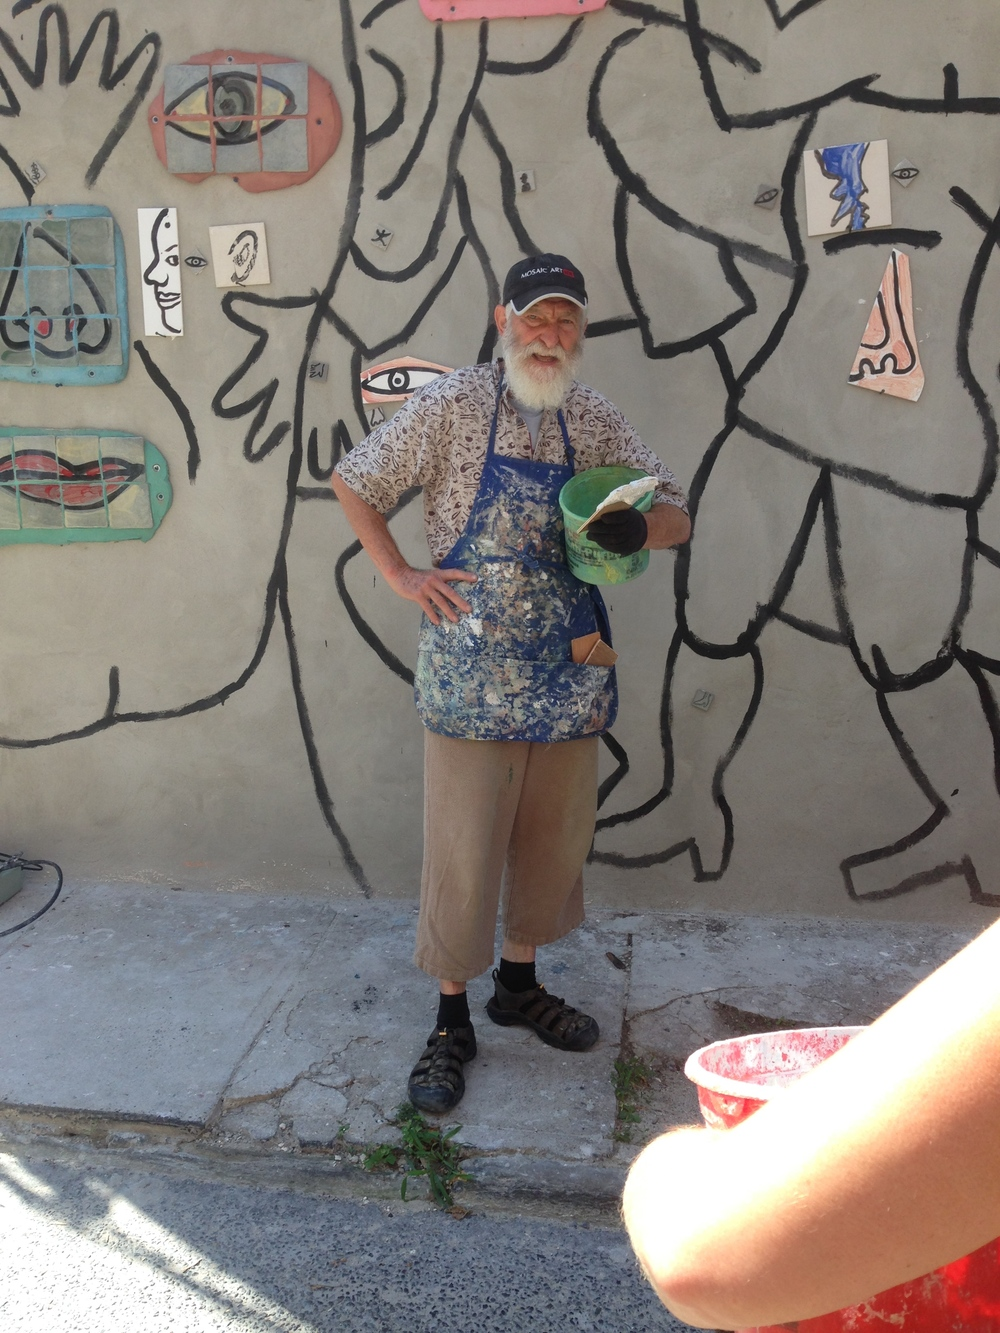 The Isaiah Zagar mural workshop began with a lesson in how to properly cut and break glass. Then onto the mural site in Northern Liberties, where Zagar instructed us on how to butter the back of the glass and apply it to the mural wall.